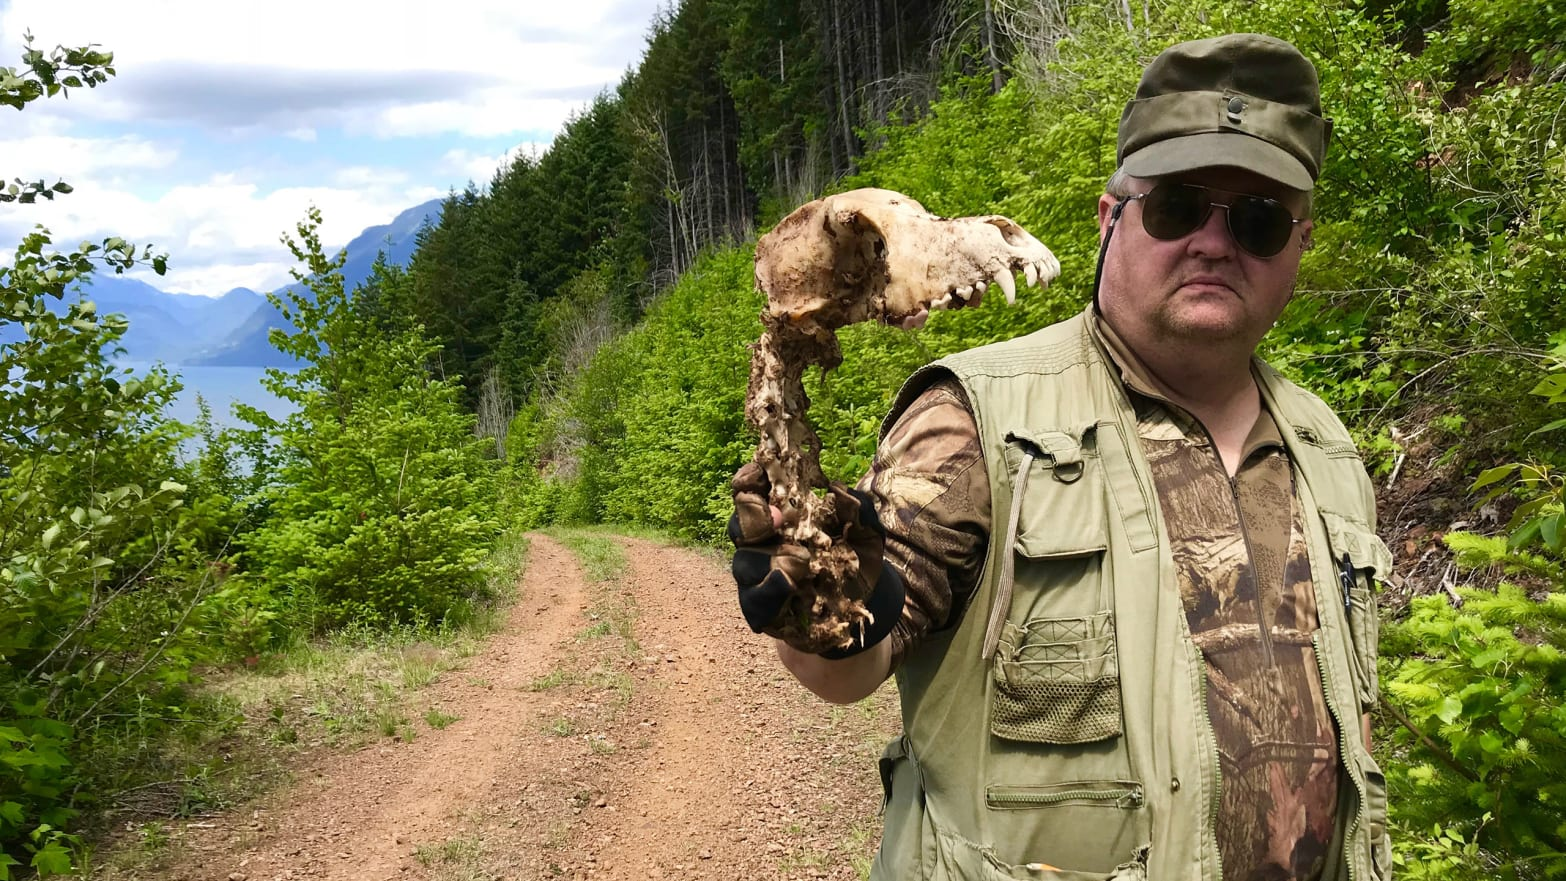 Sasquatch Hunting Goes Mainstream in Small Canadian Town